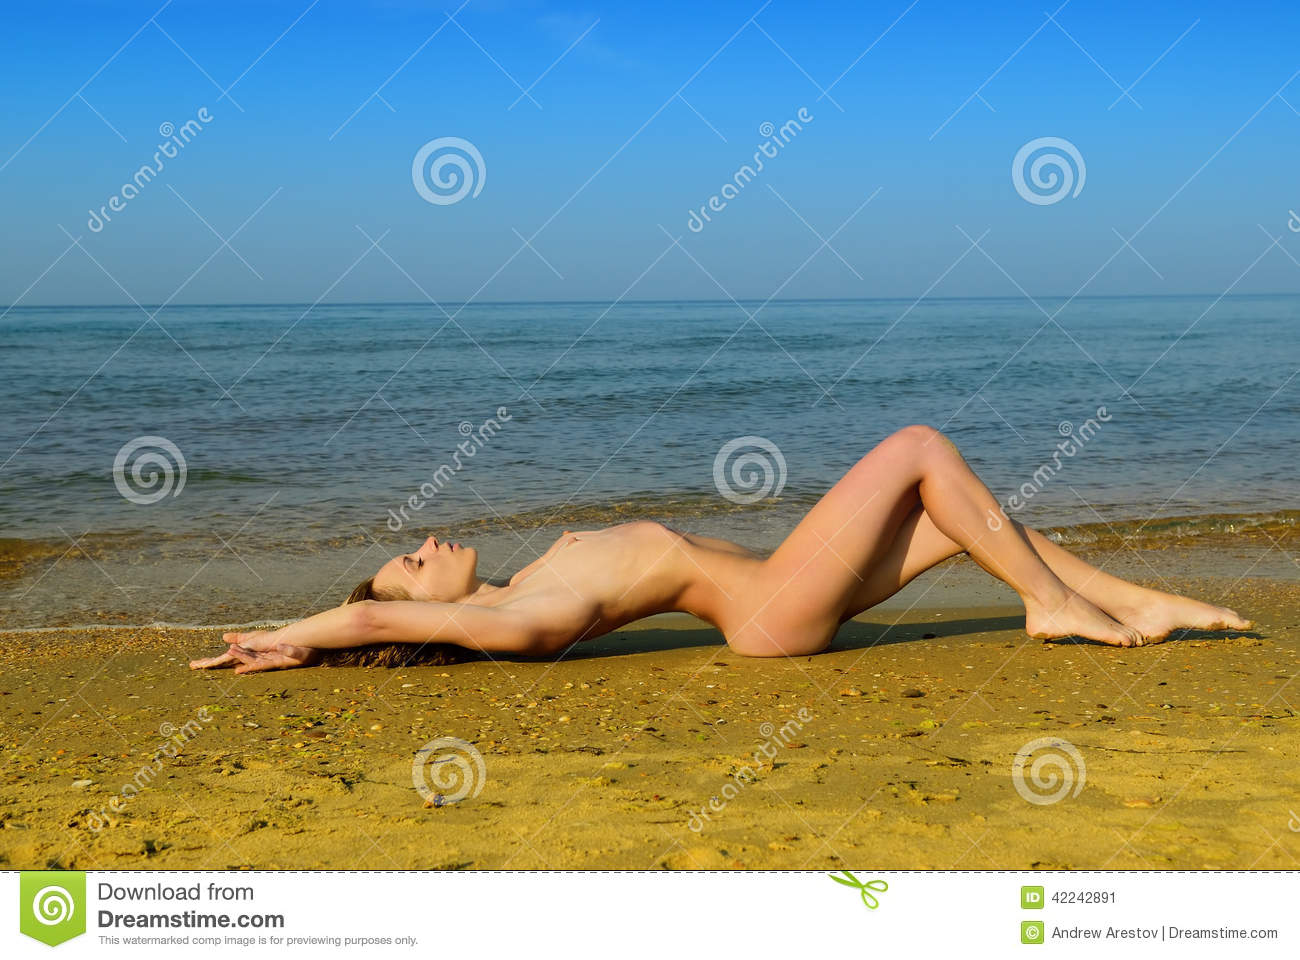 Nude girls laying down on the beach